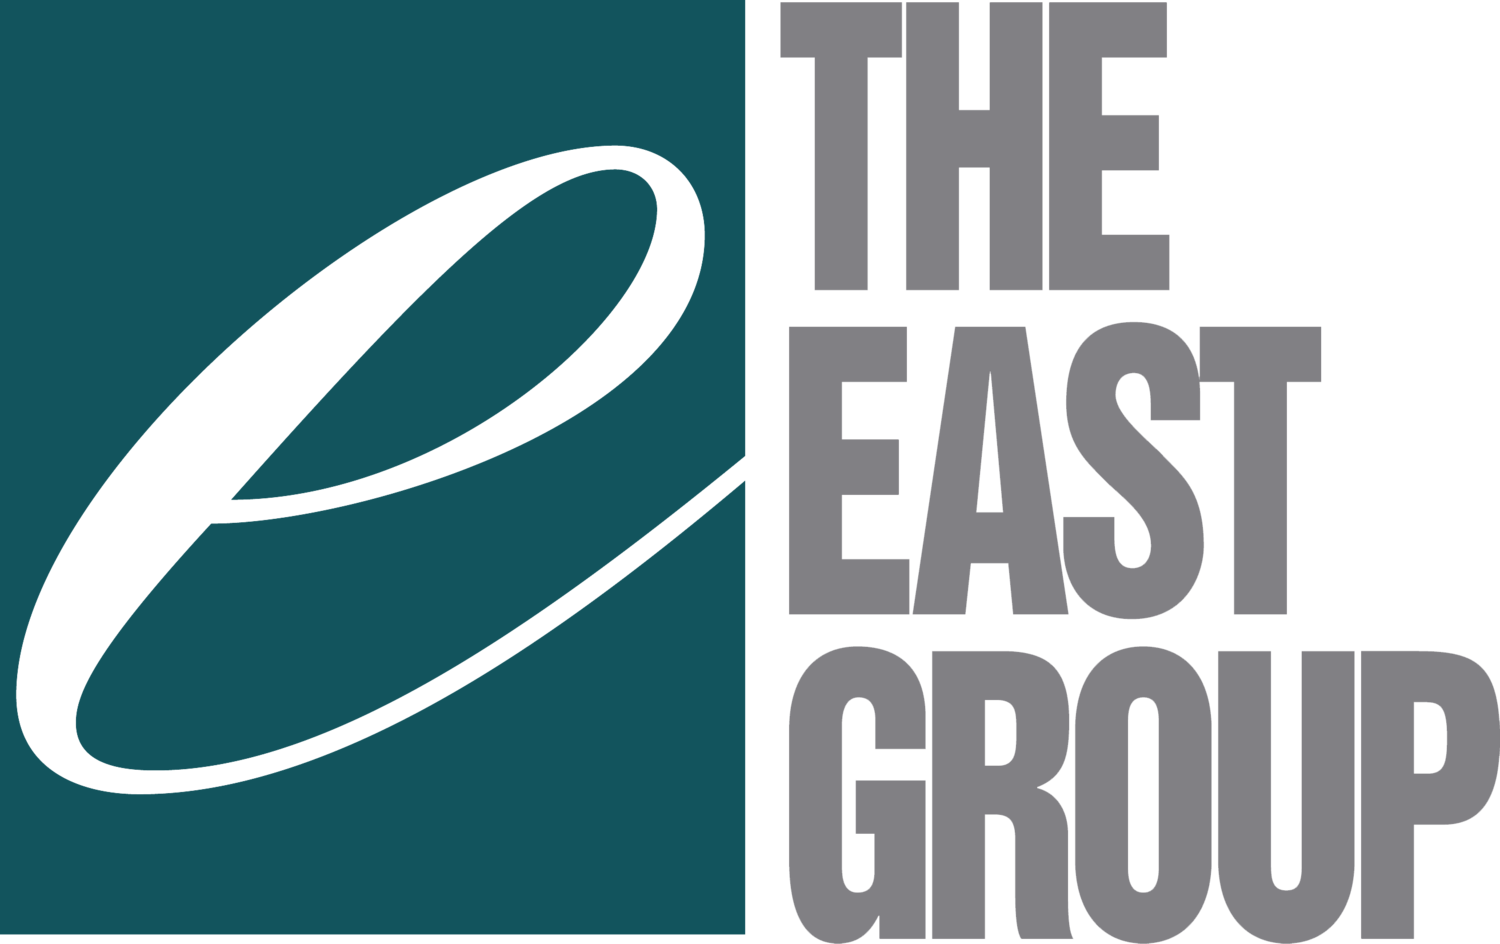 The East Group